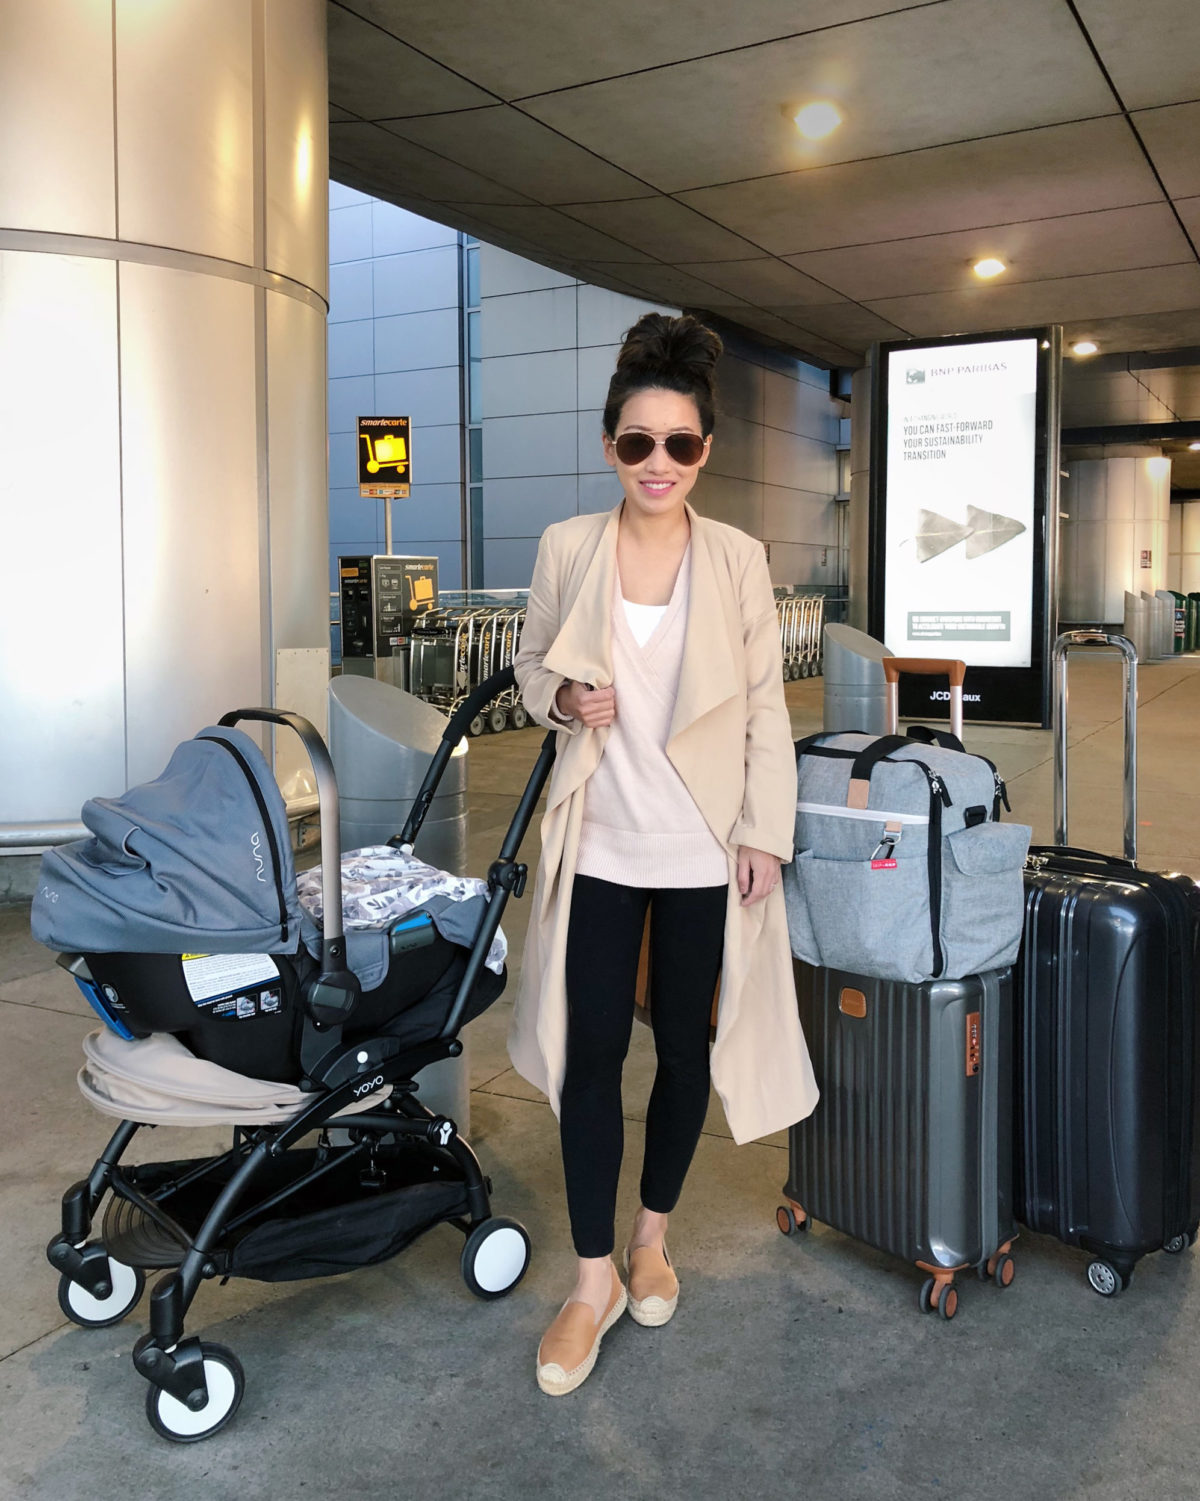 breastfeeding nursing friendly travel outfit for airport